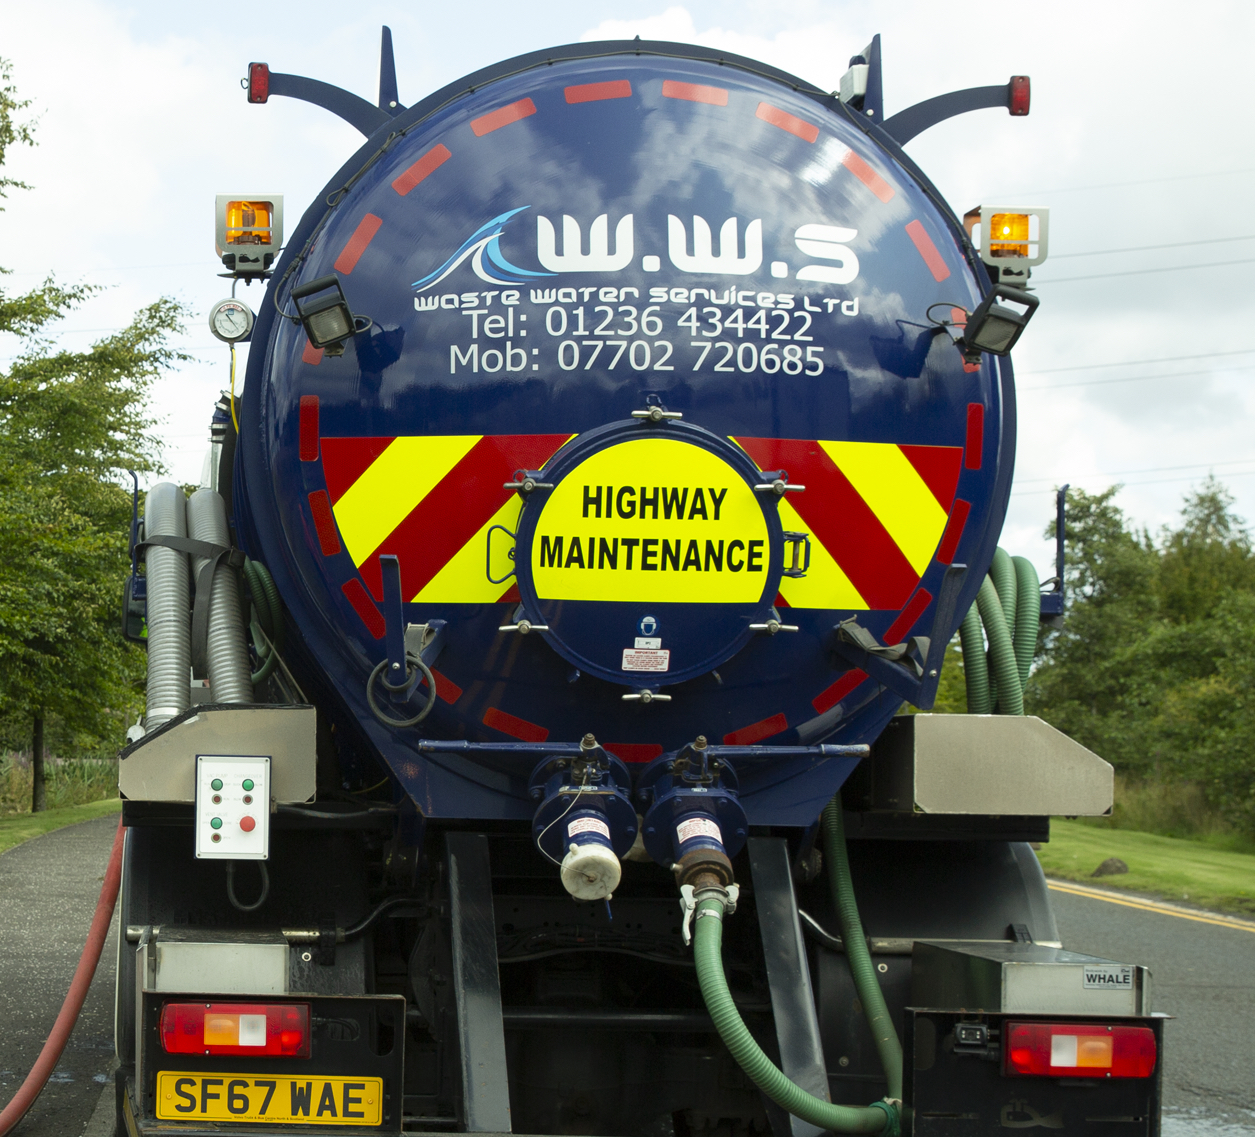 waste water services lorry